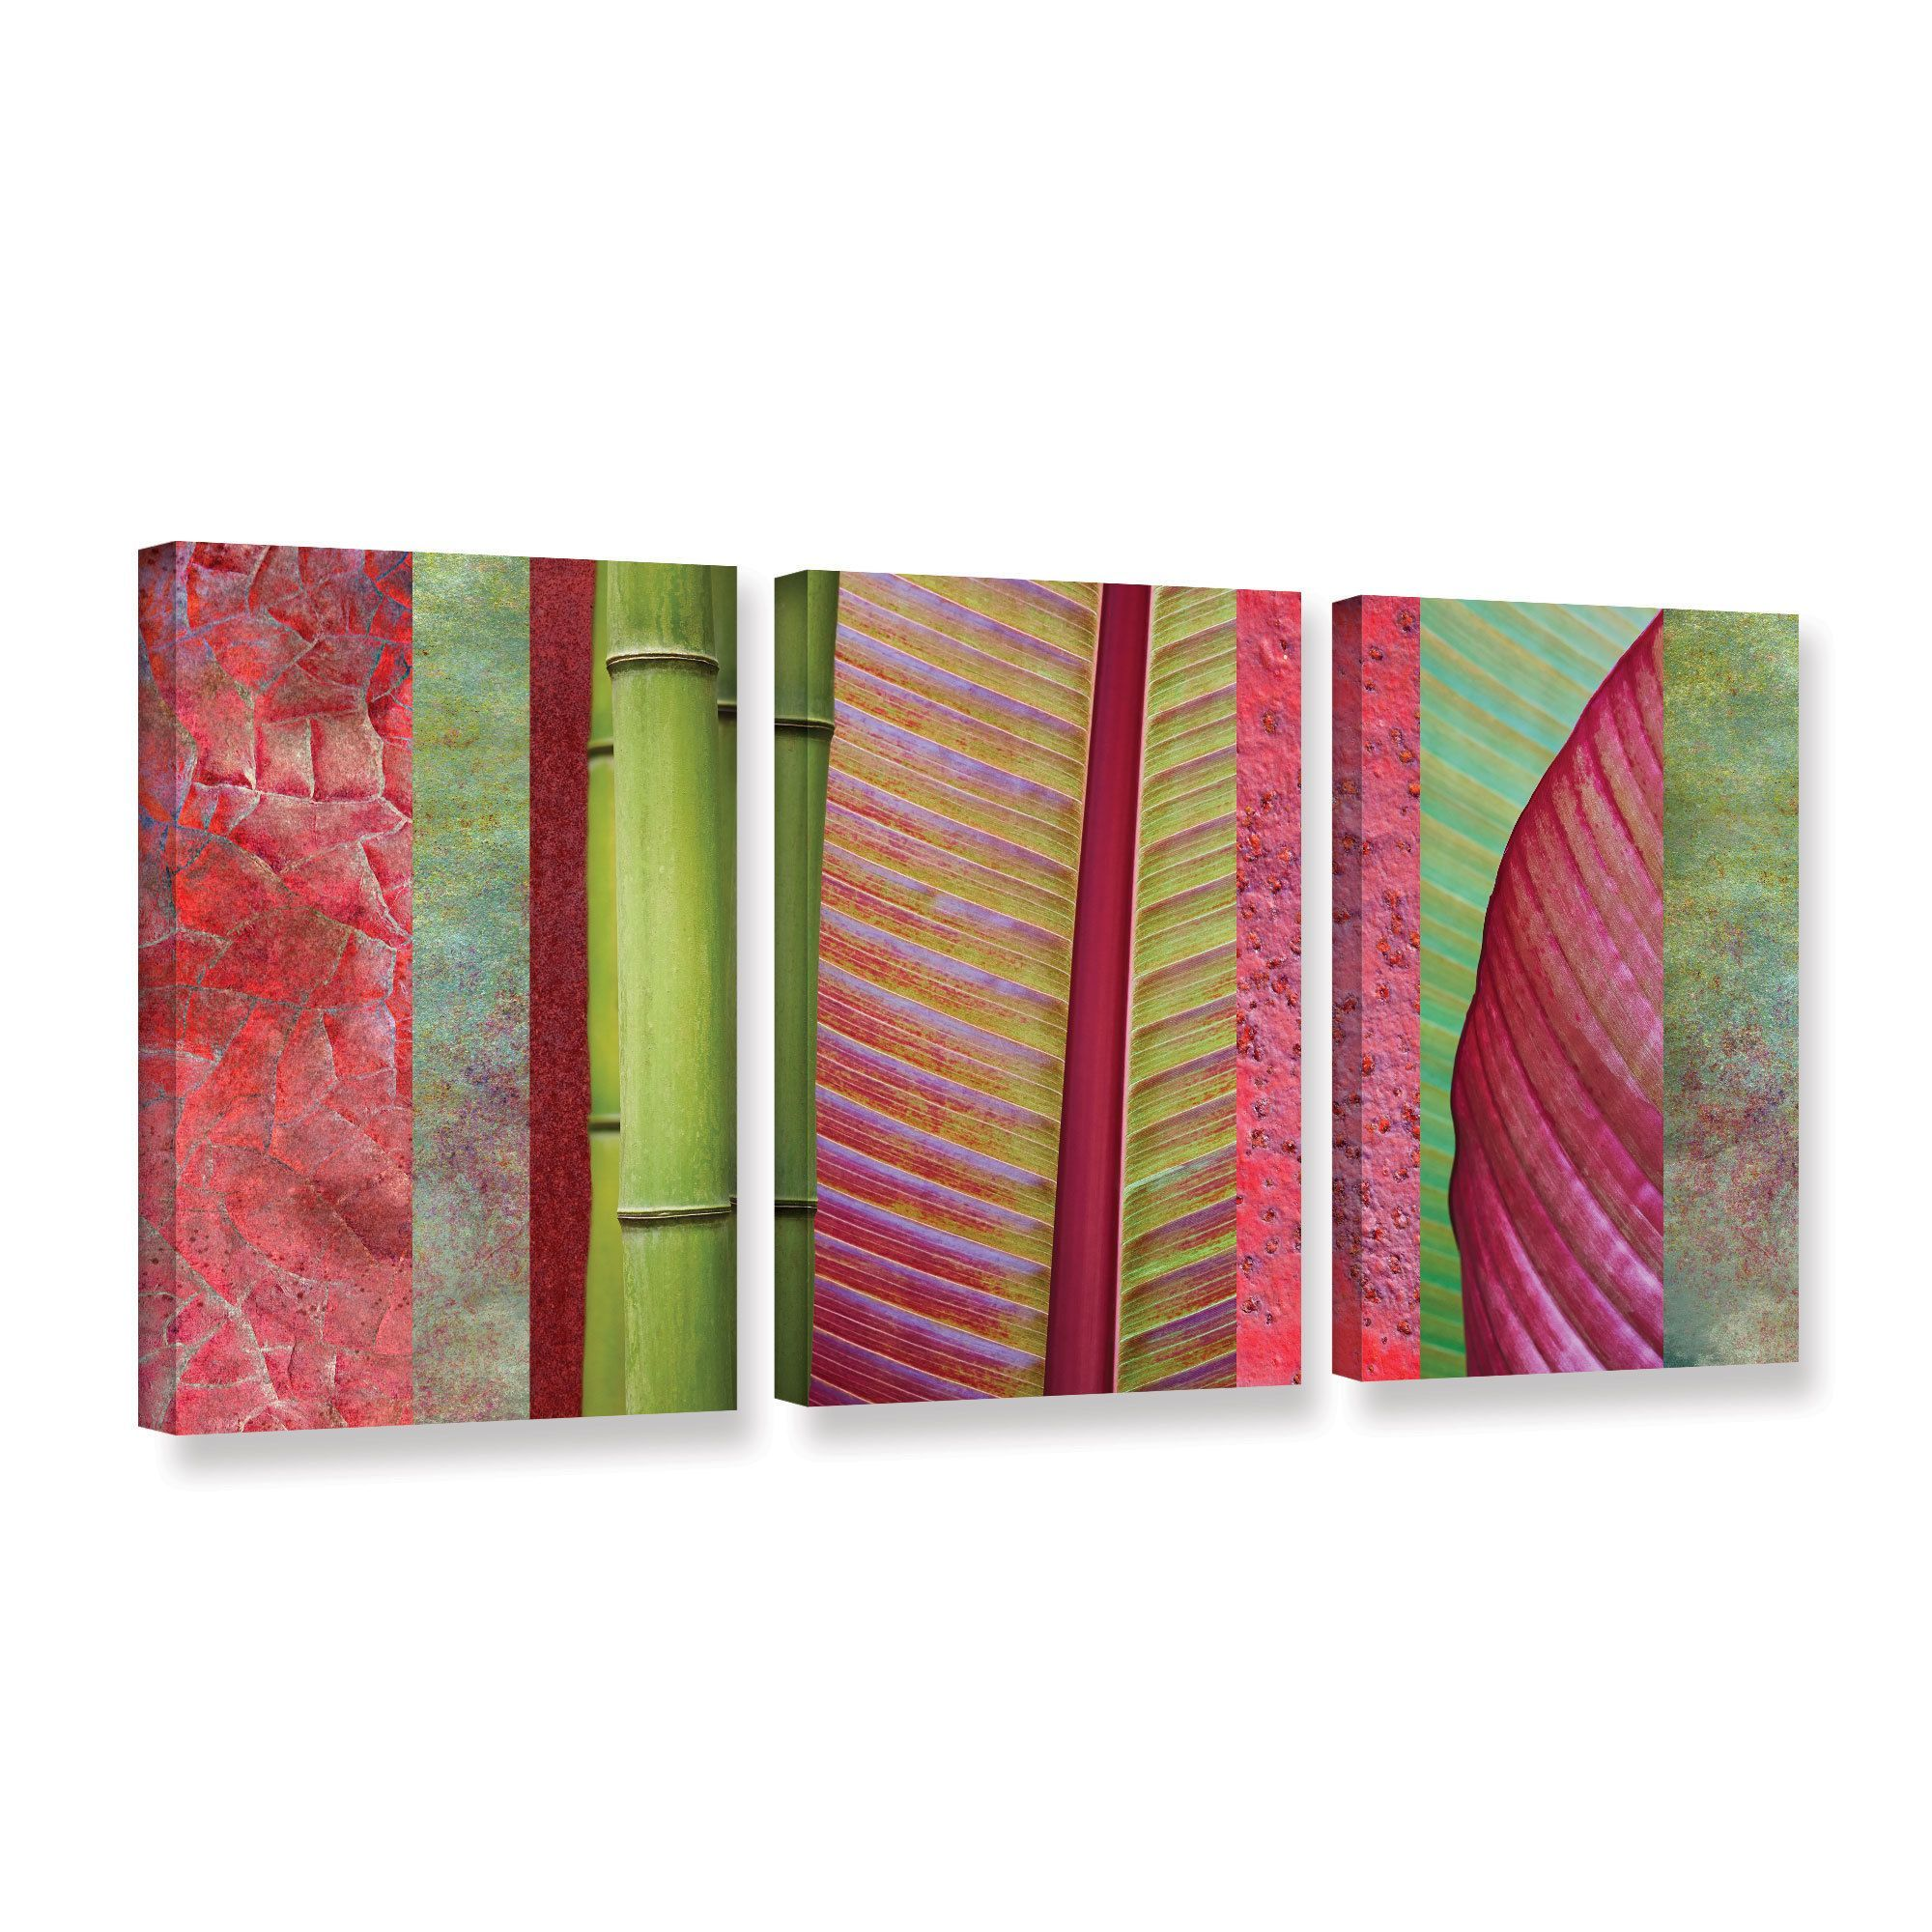 ArtWall 'Cora Niele's Green' 3-piece Gallery Wrapped Set